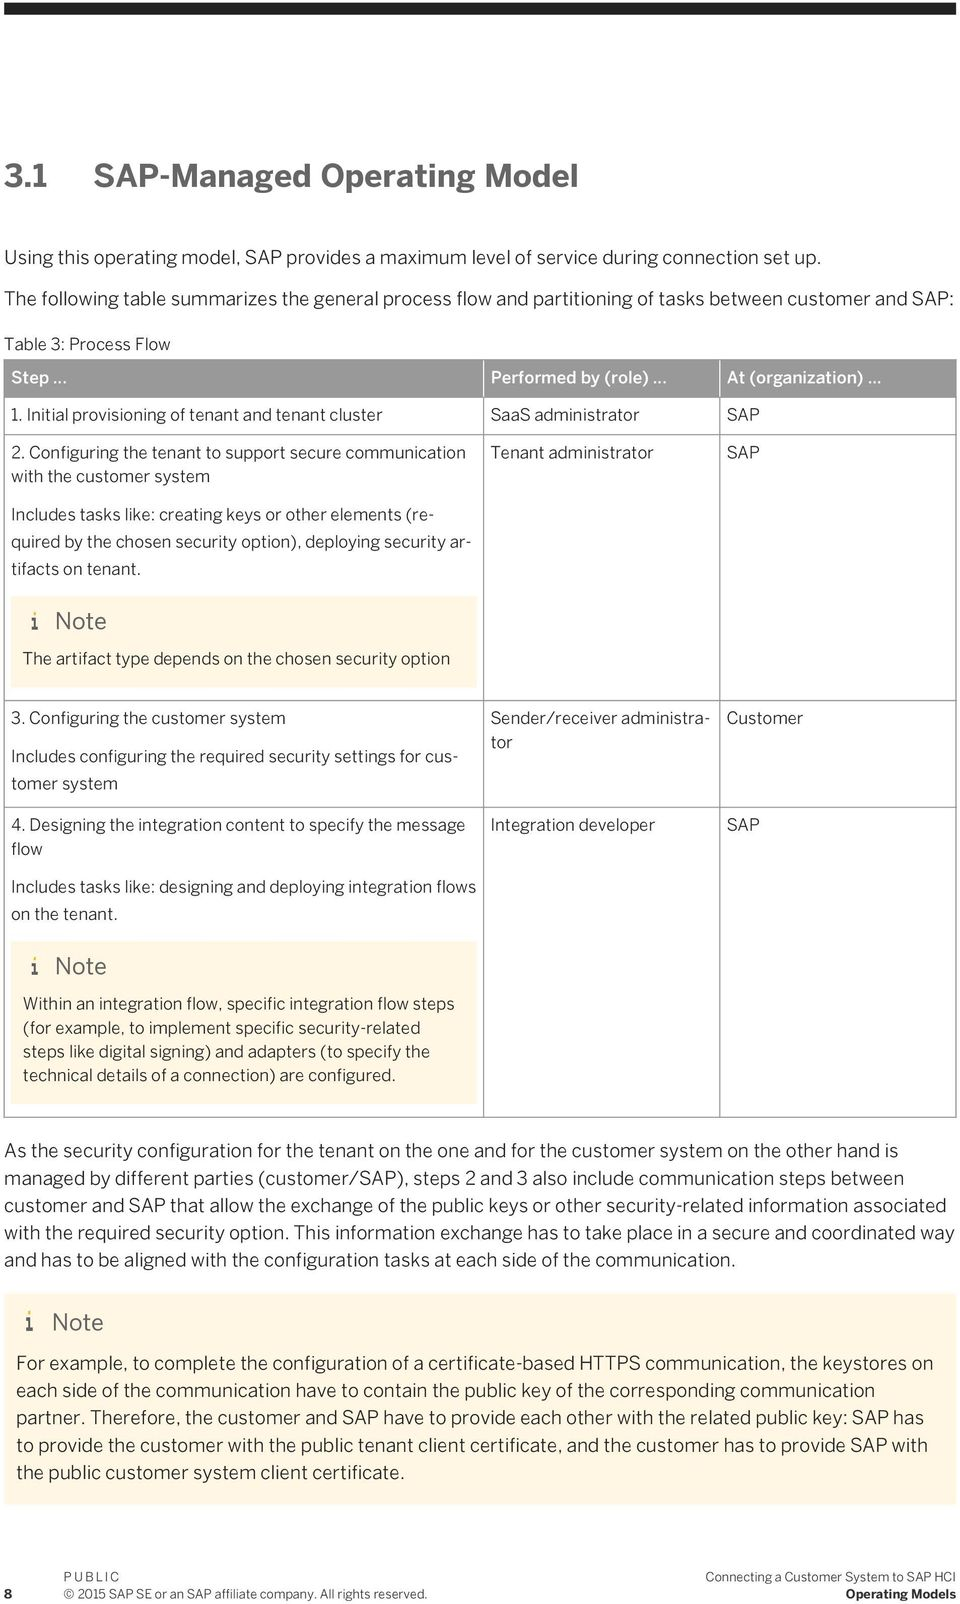 PUBLIC Connecting a Customer System to SAP HCI - PDF